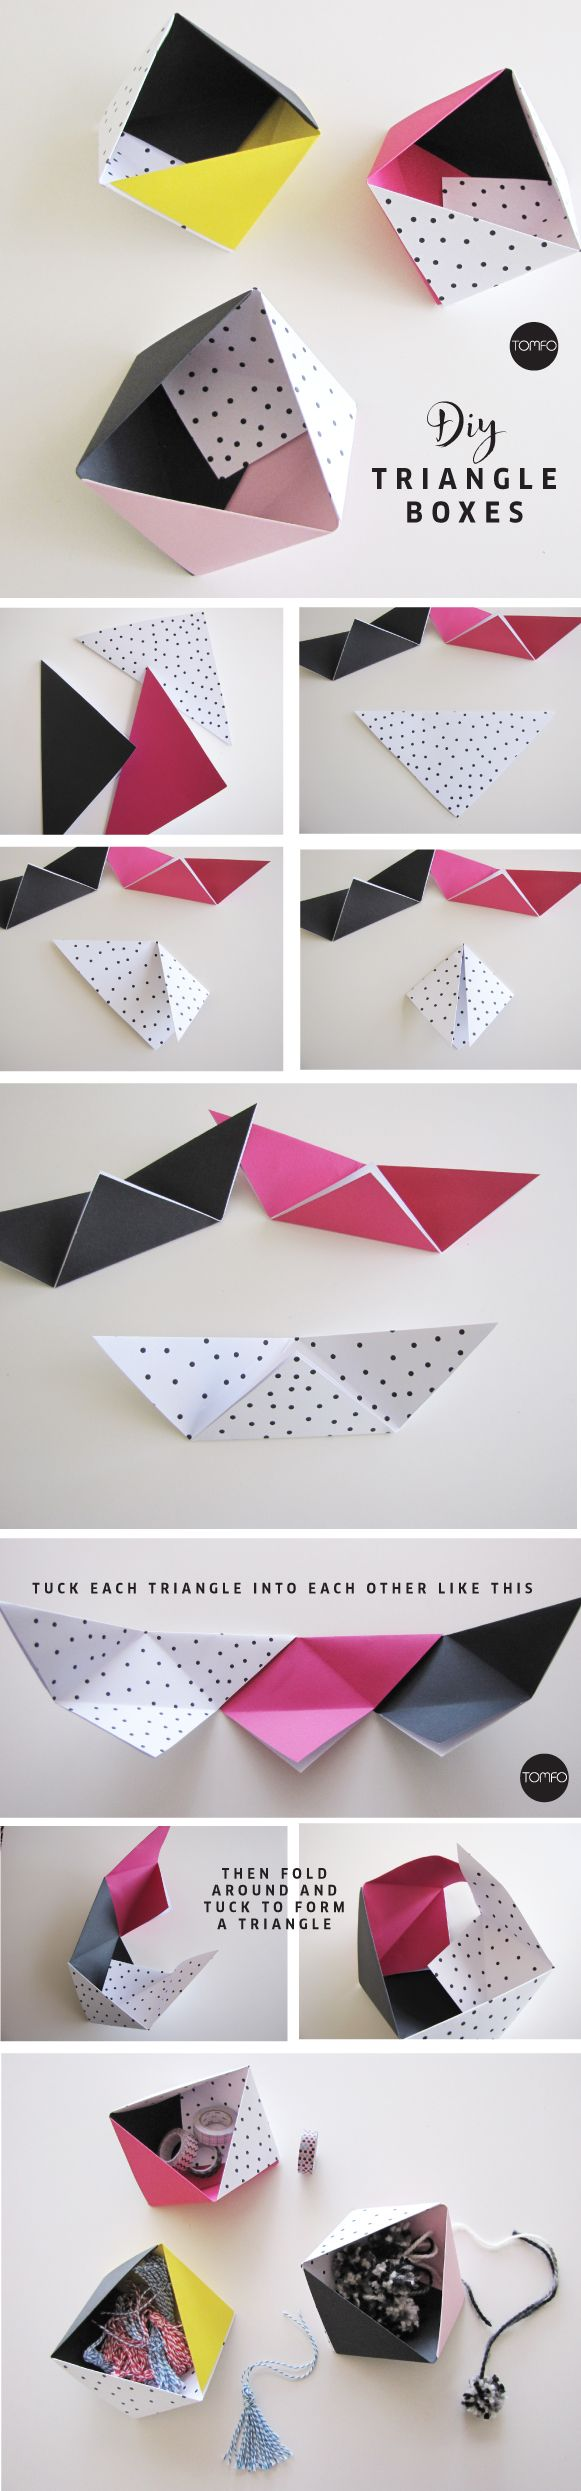 DIY Triangle Box Tutorial